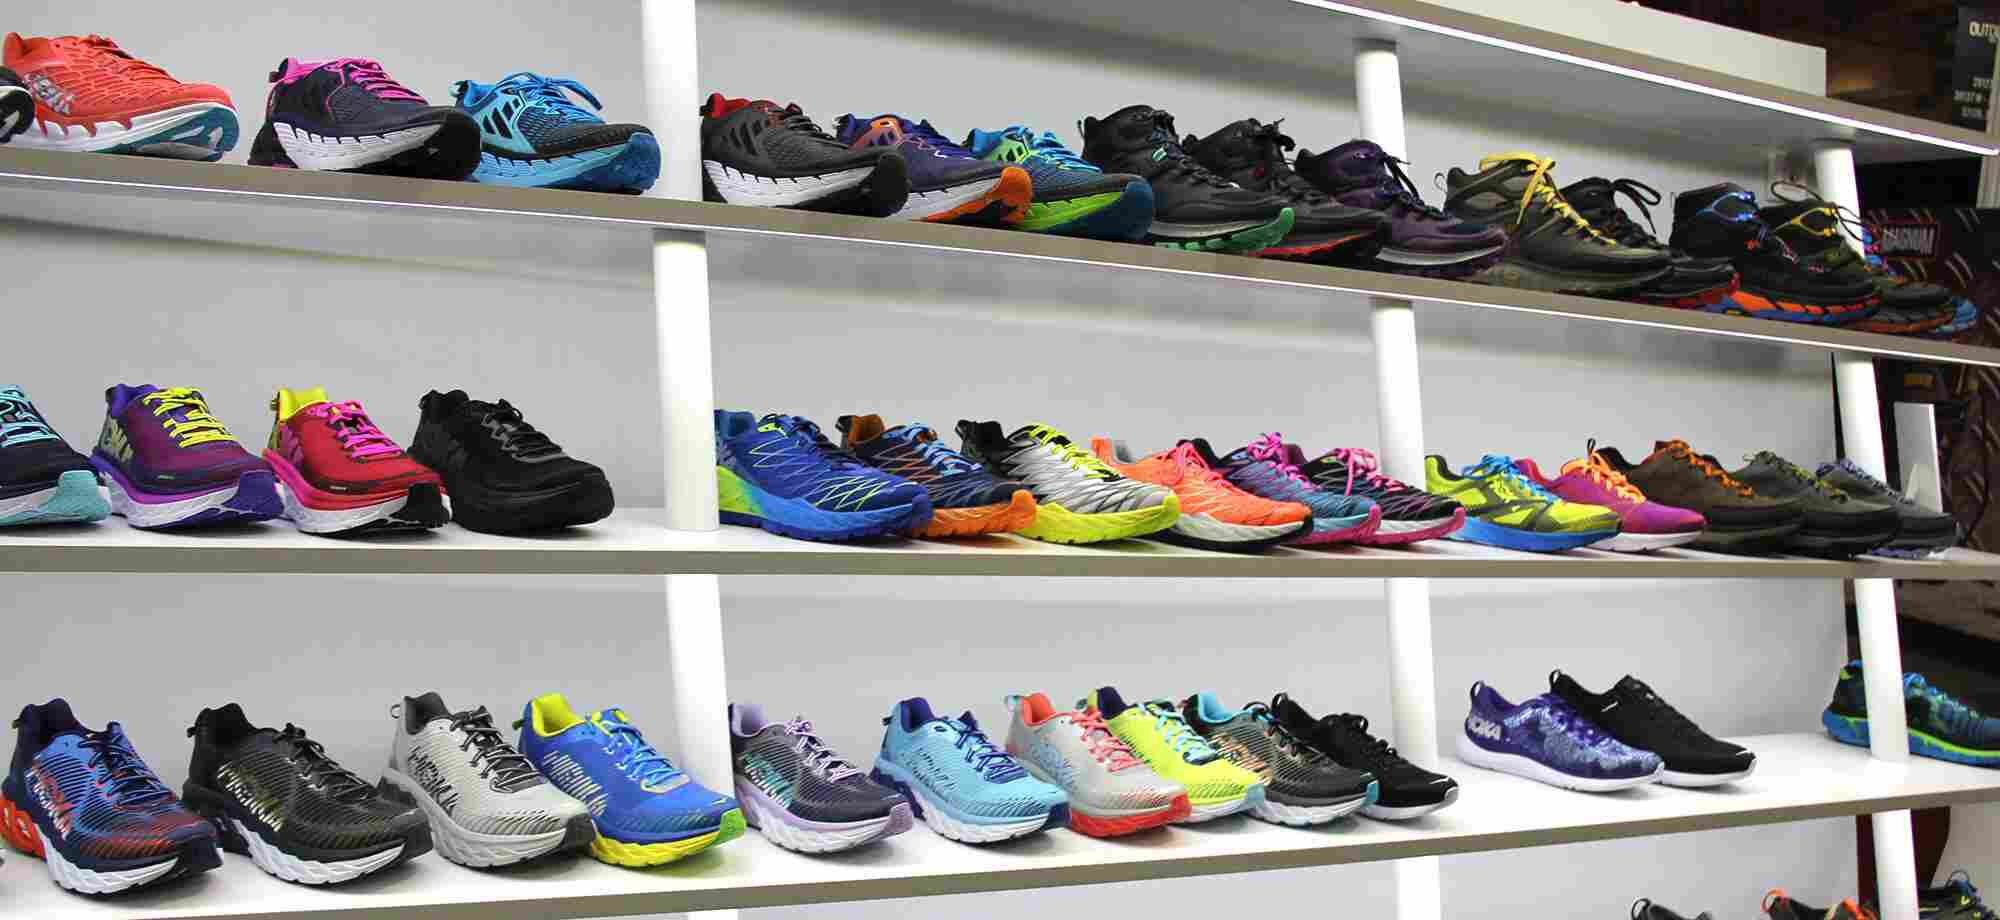 hoka-one-one_product-showcase-line-up